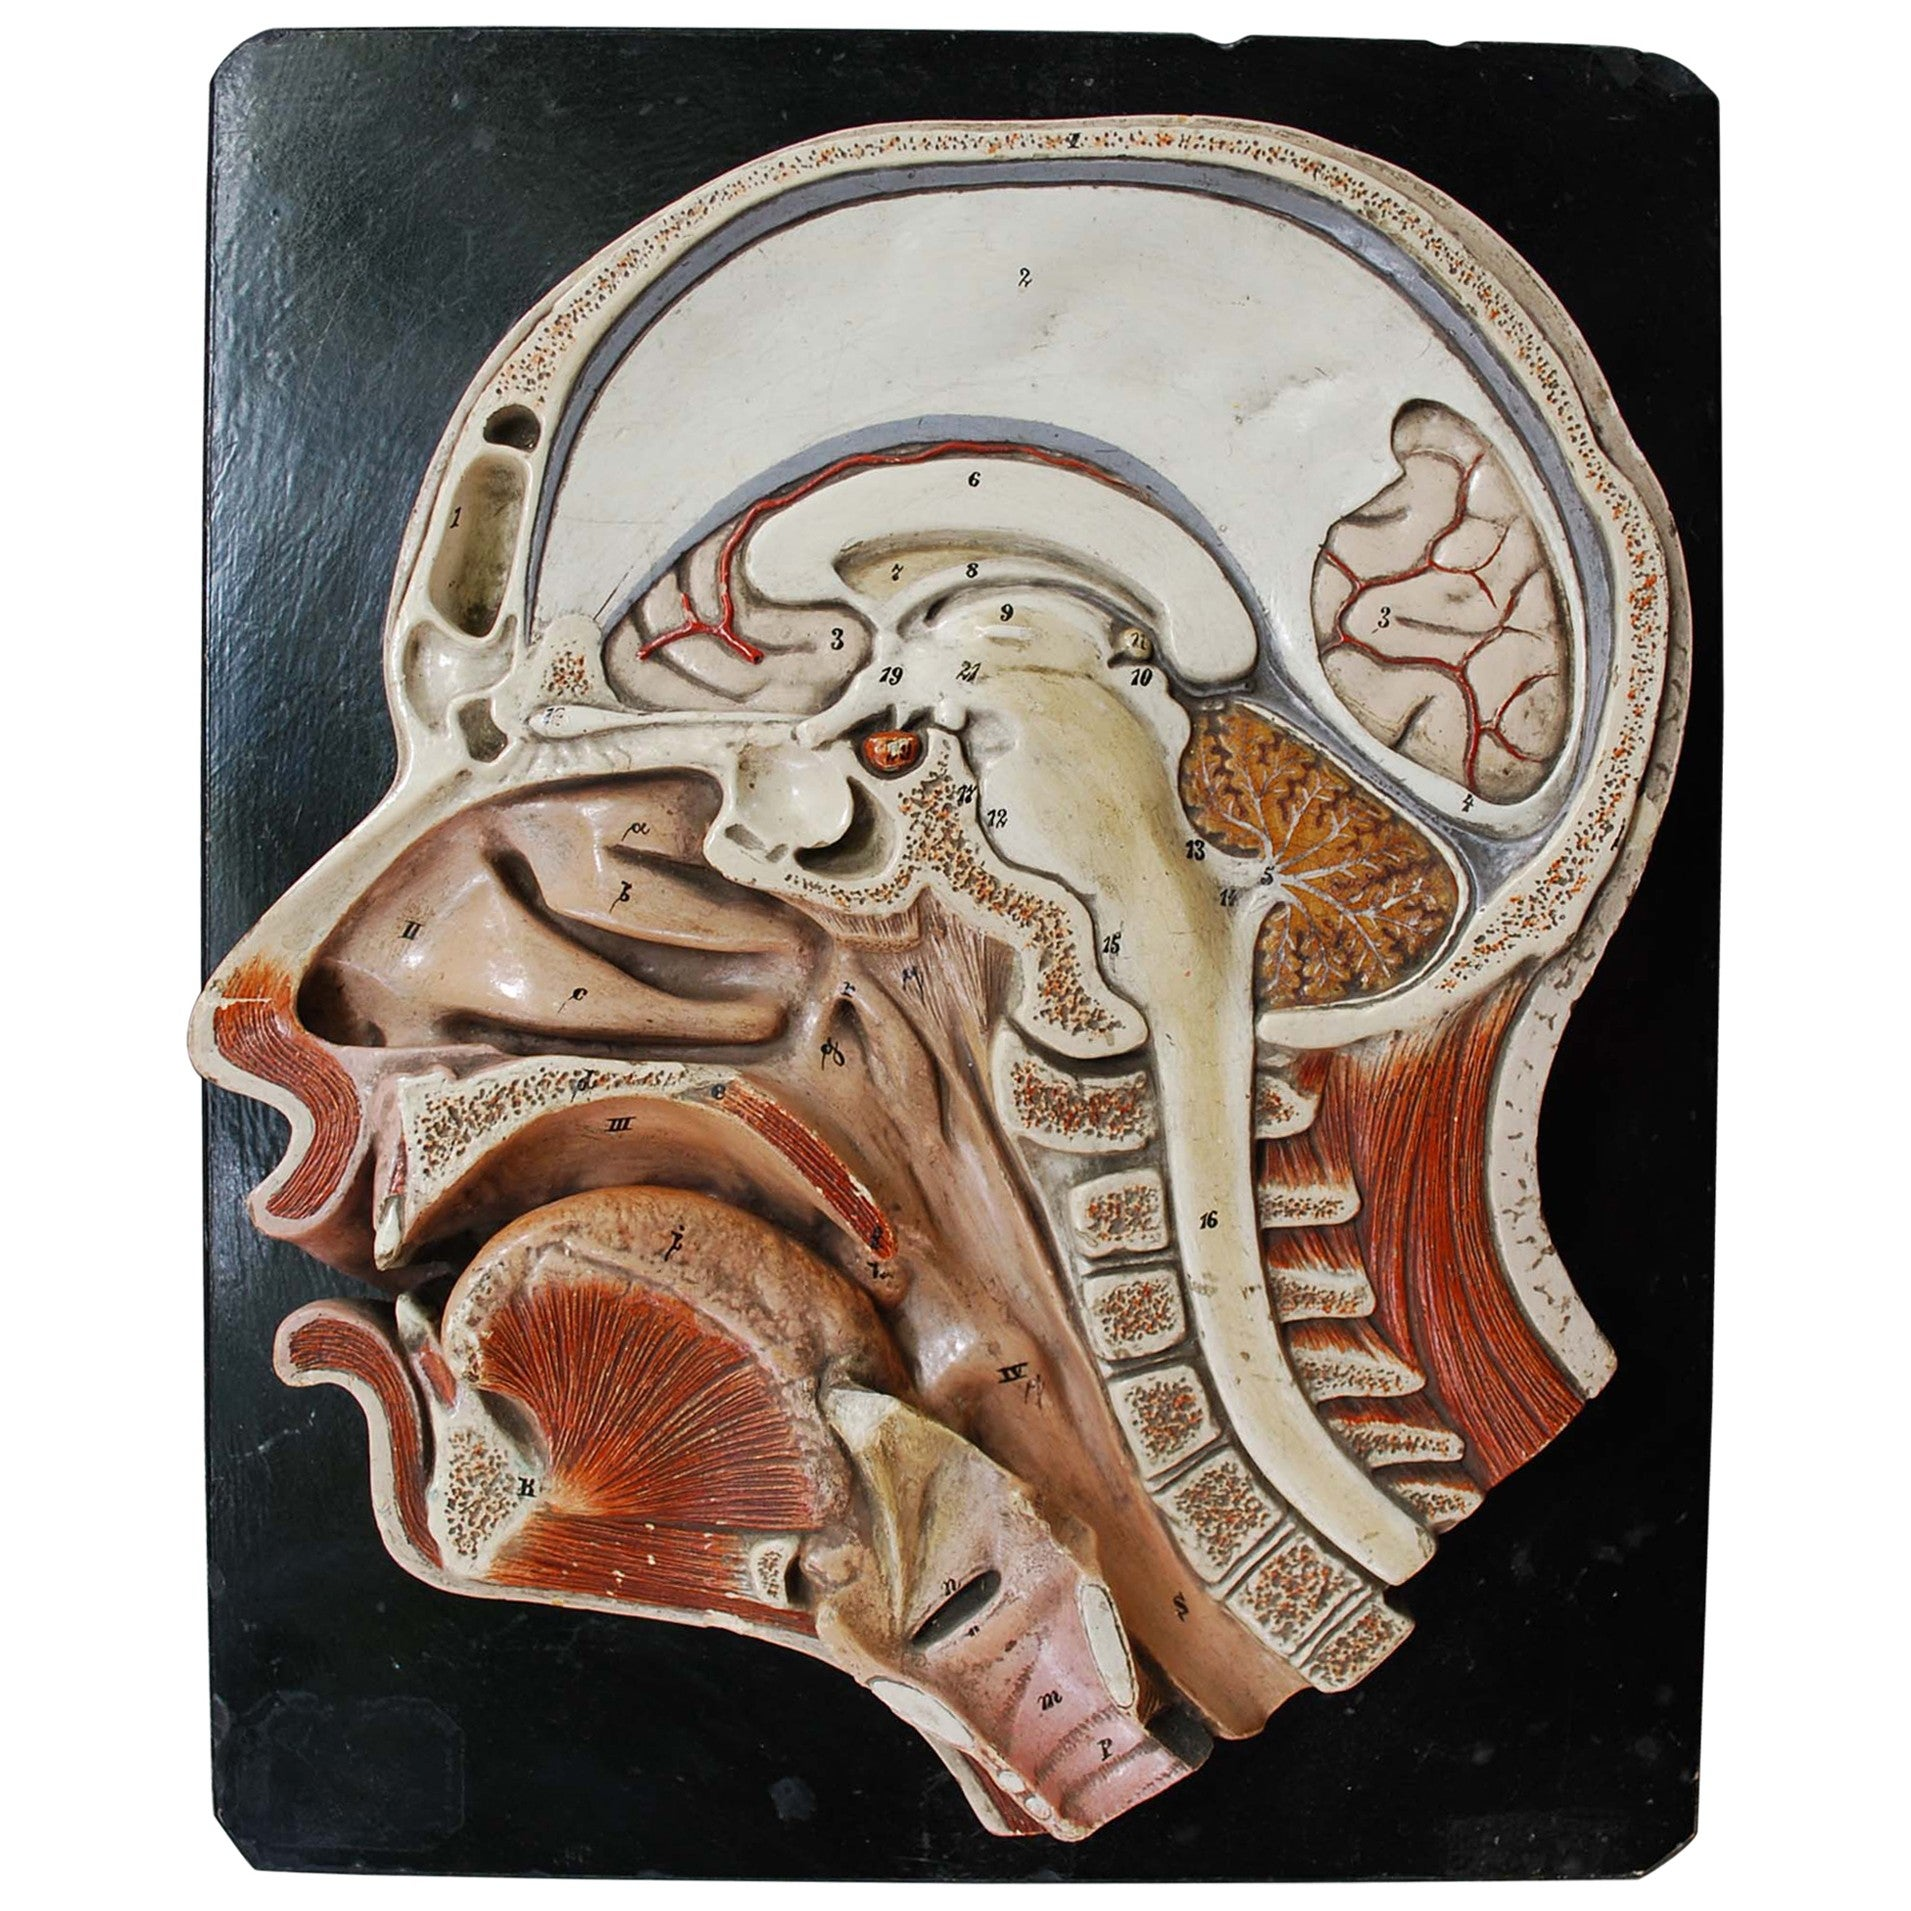 19th Century Didactic Anatomical Model of the Ear by Bock-Steger ...